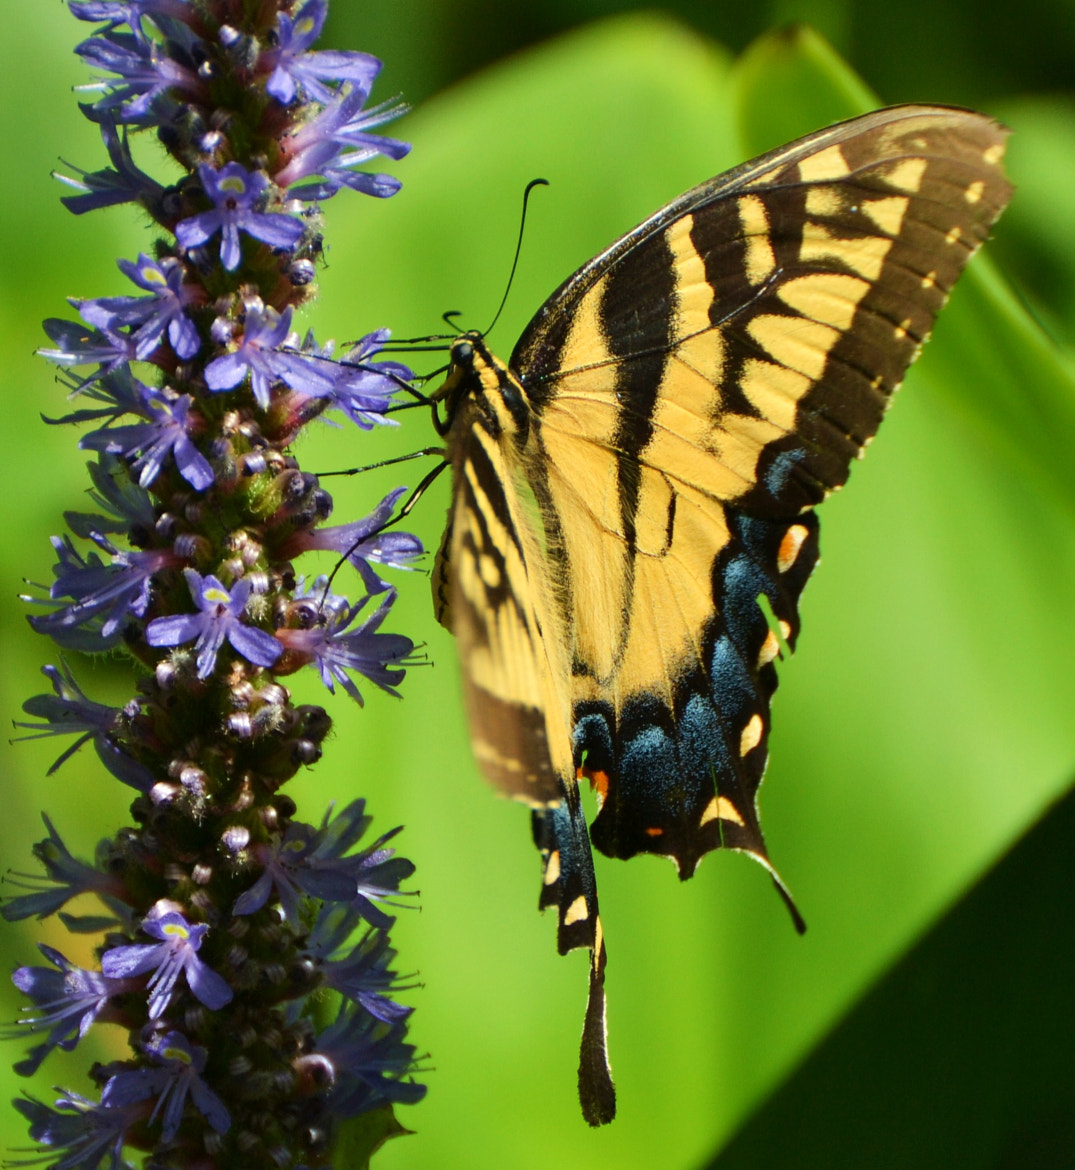 Photograph Butterfly/Jacksonville by Michael Fitzsimmons on 500px